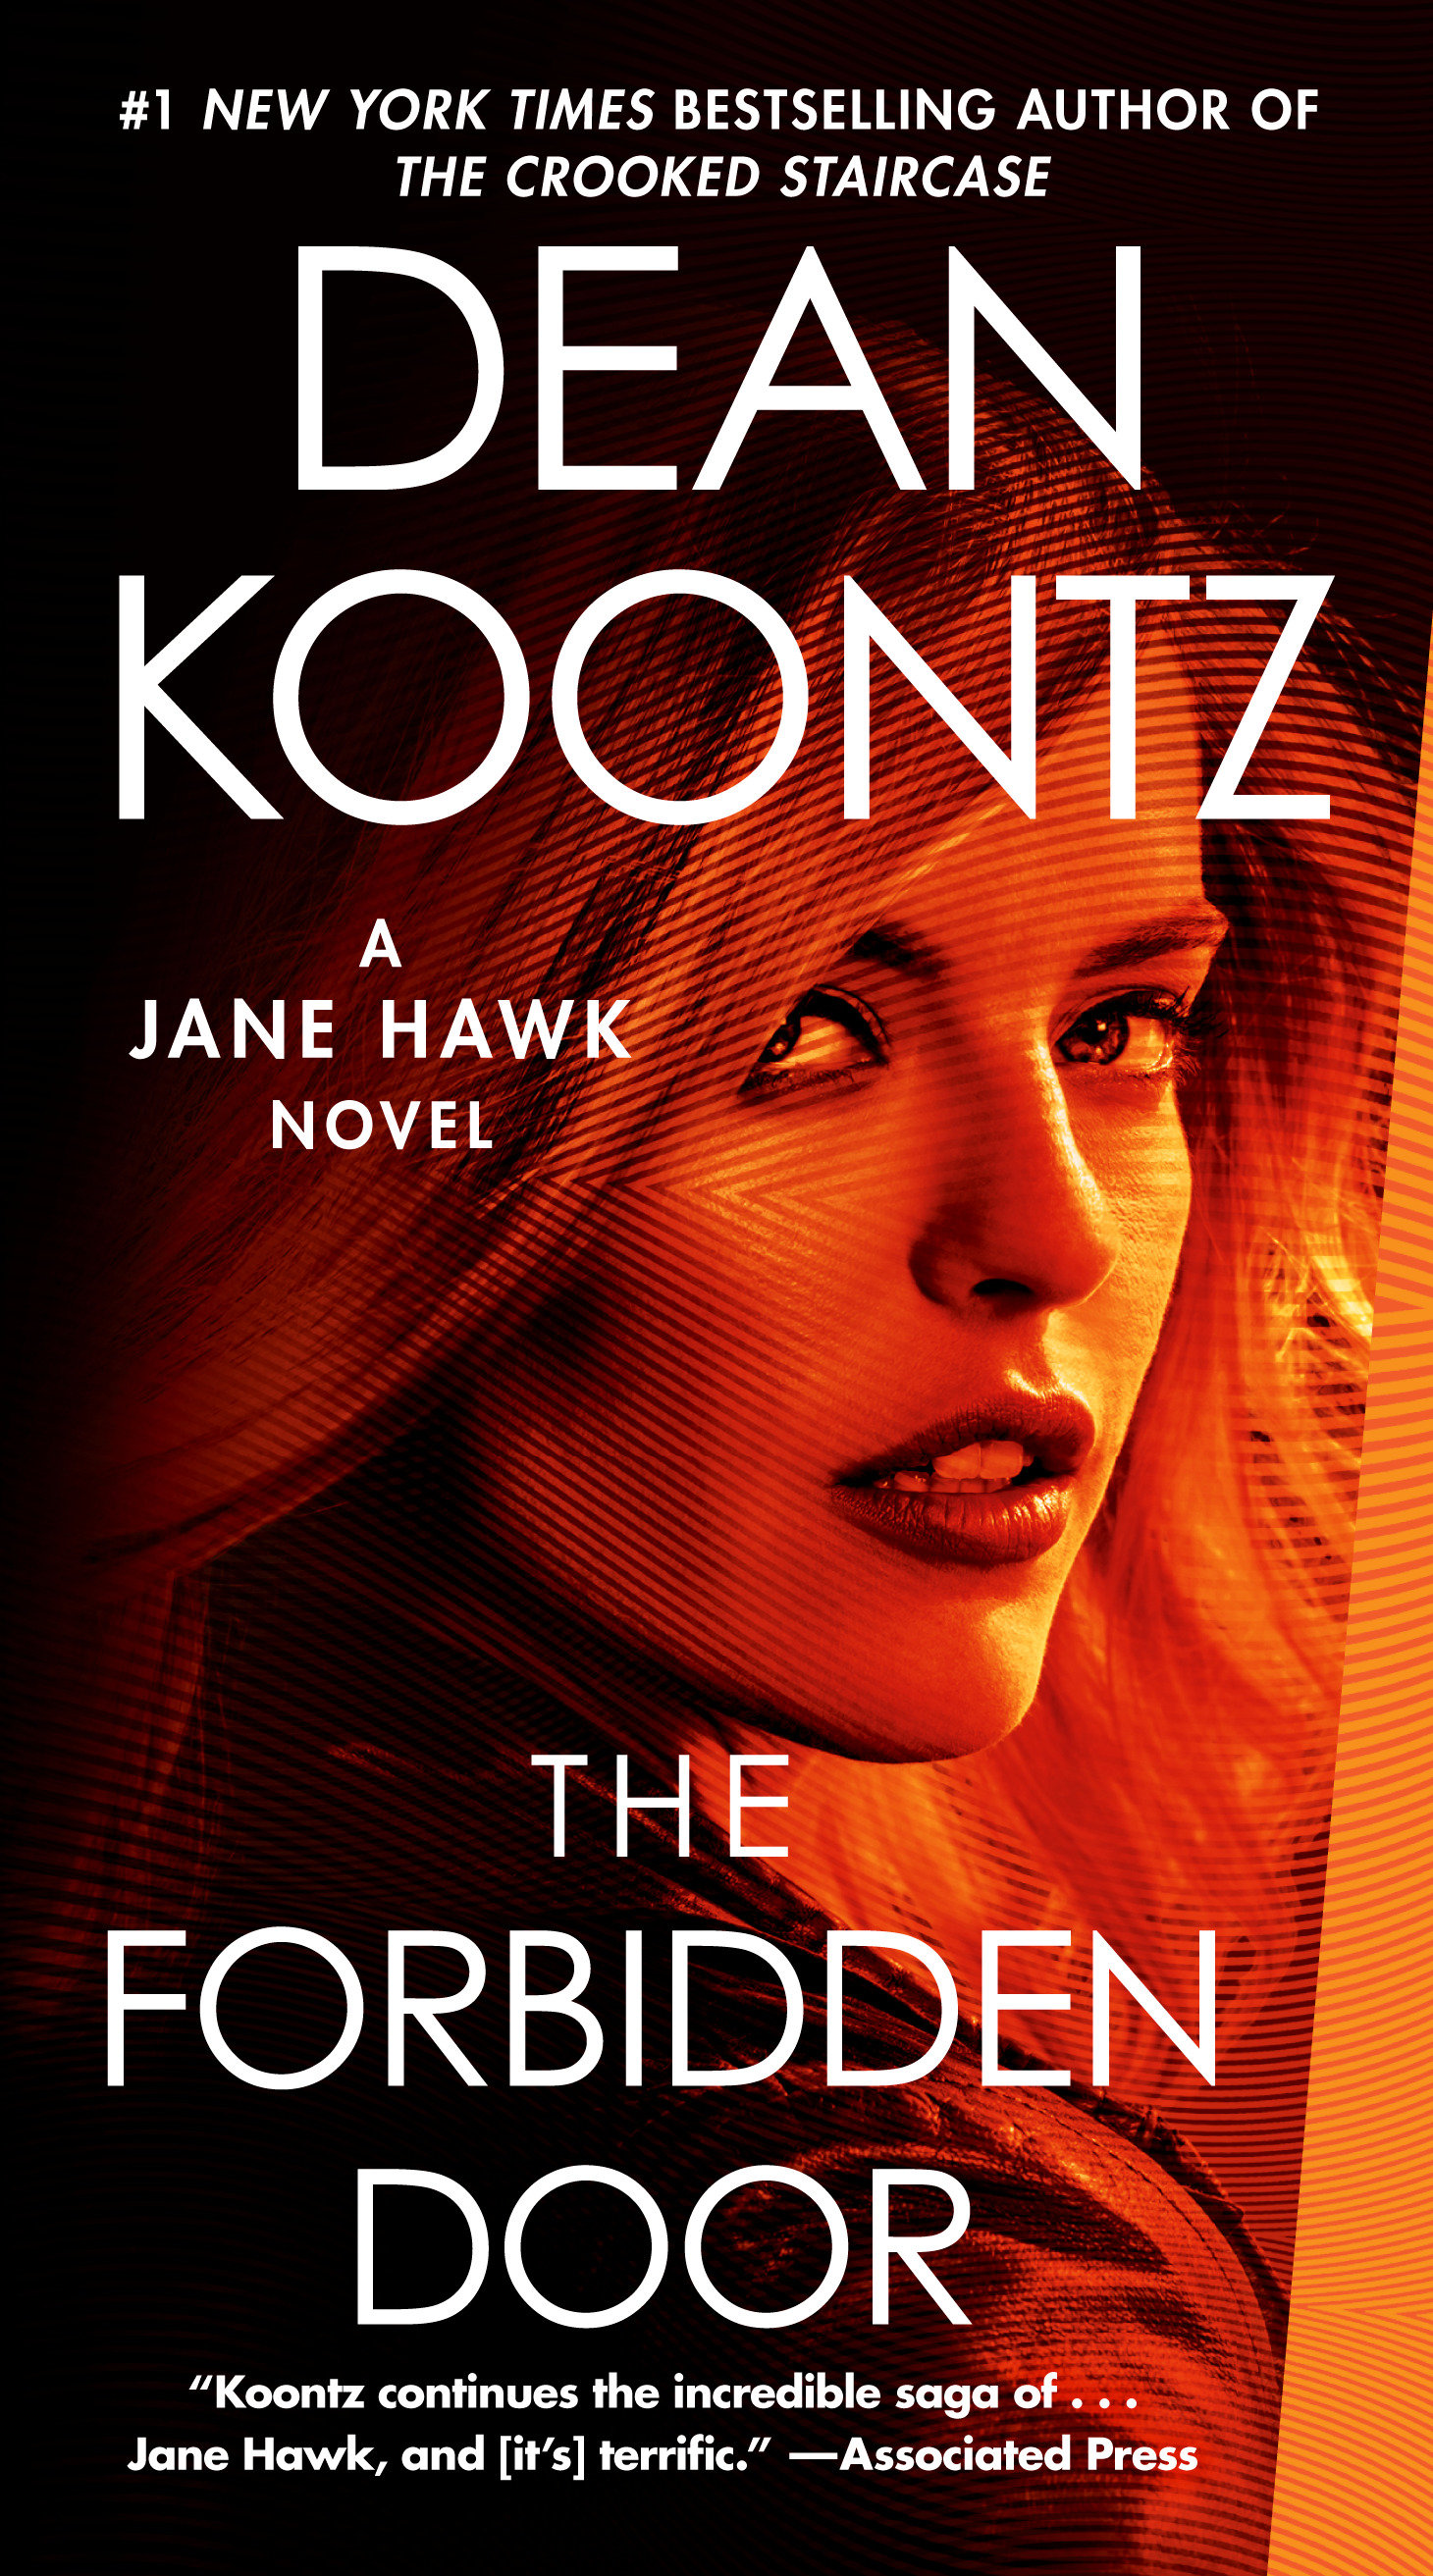 The Forbidden Door [electronic resource] : A Jane Hawk Novel